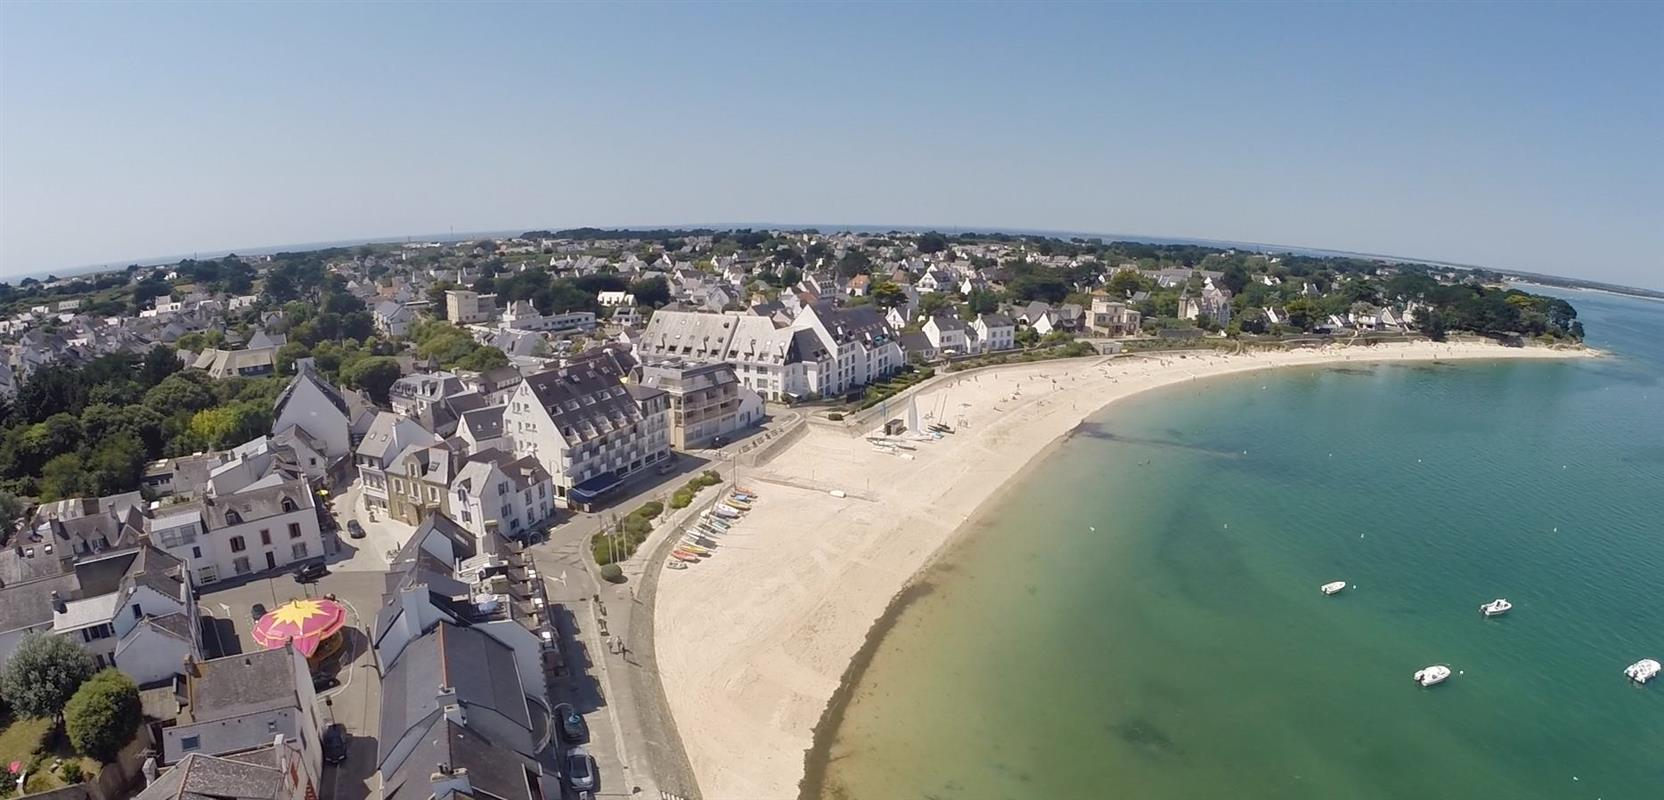 Das hotel de la plage befindet sich im port d 39 orange in saint pierre quiberon auf der halbinsel - Office de tourisme saint pierre quiberon ...